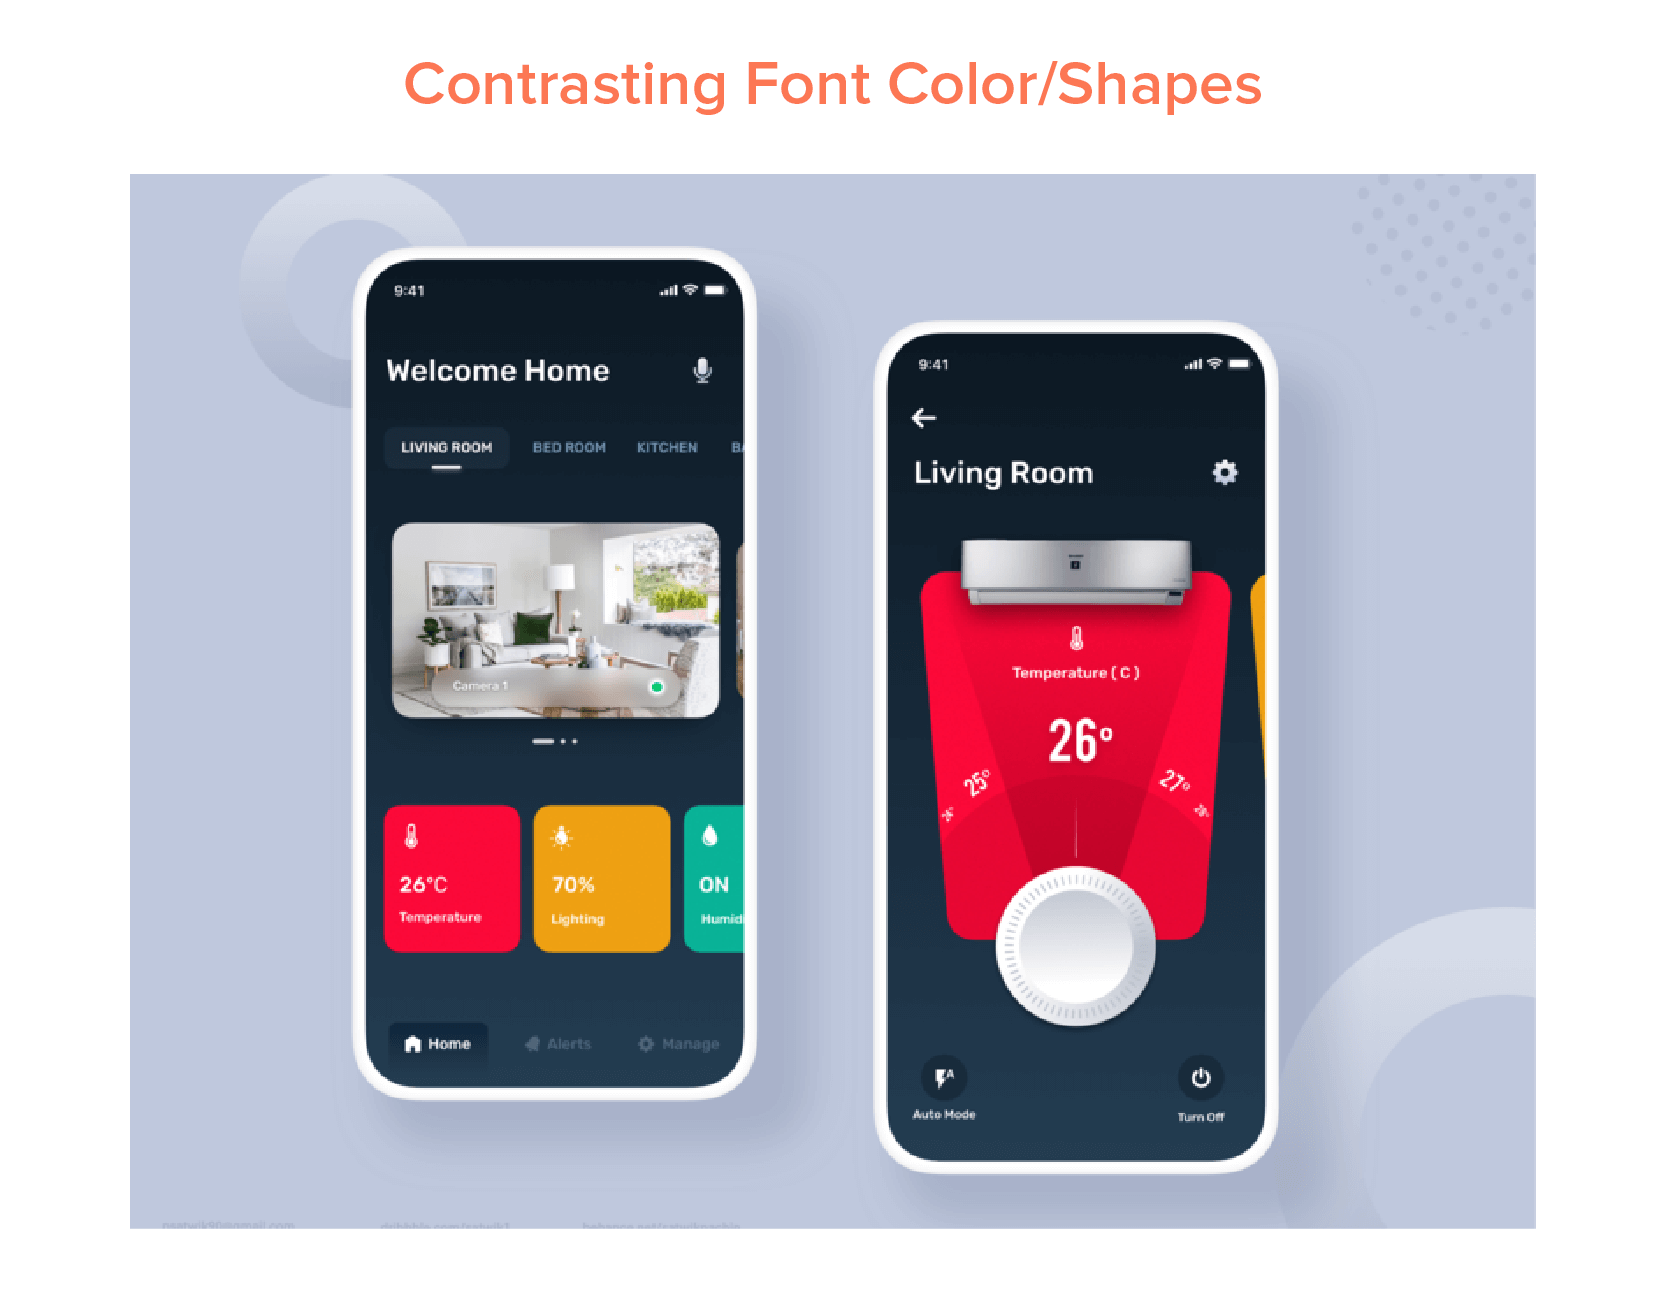 Contrasting Font Color and Shapes